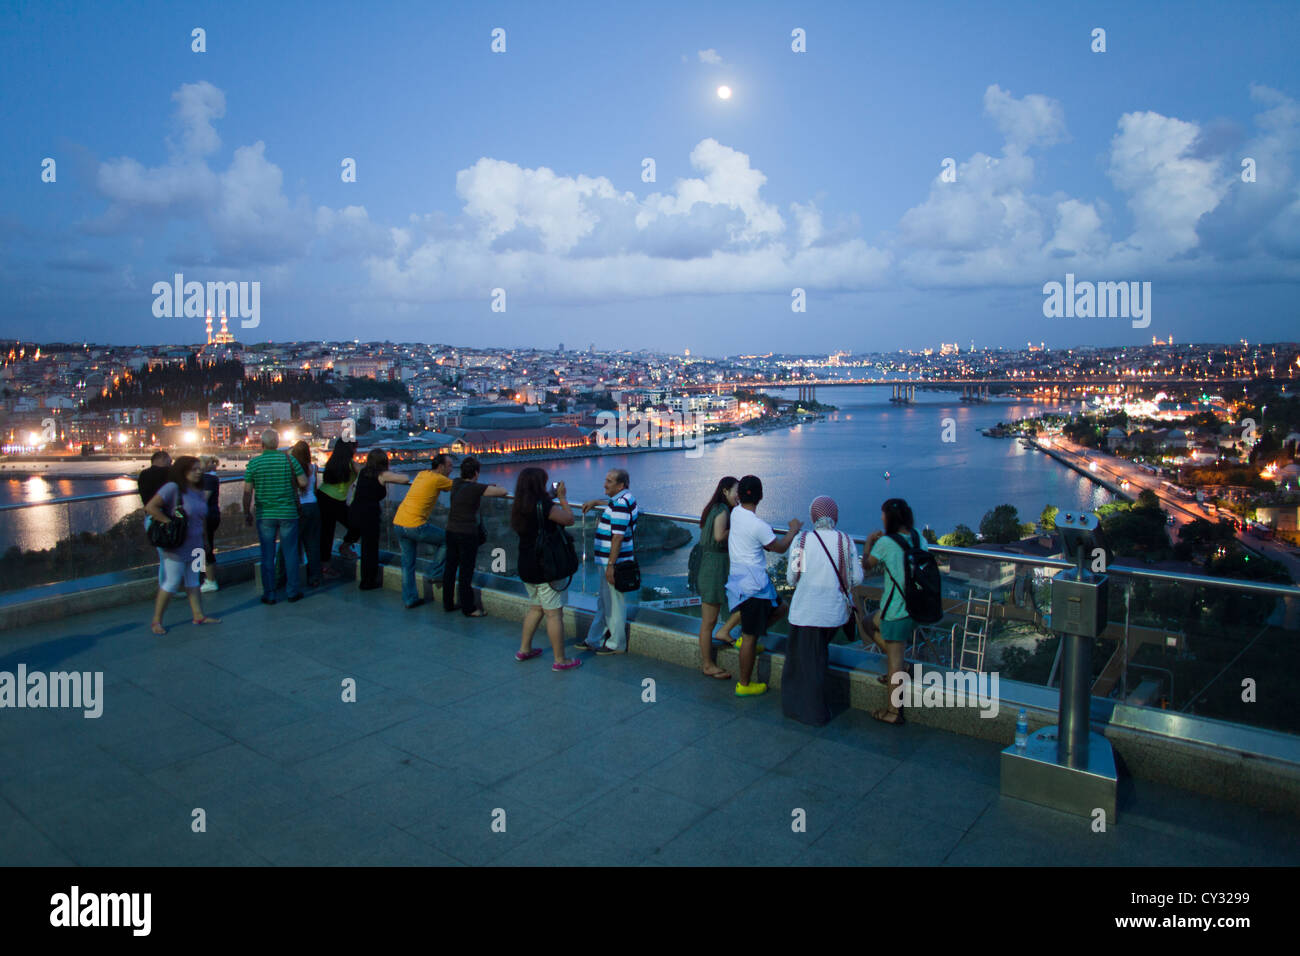 Pierre Loti viewpoint in istanbul - Stock Image